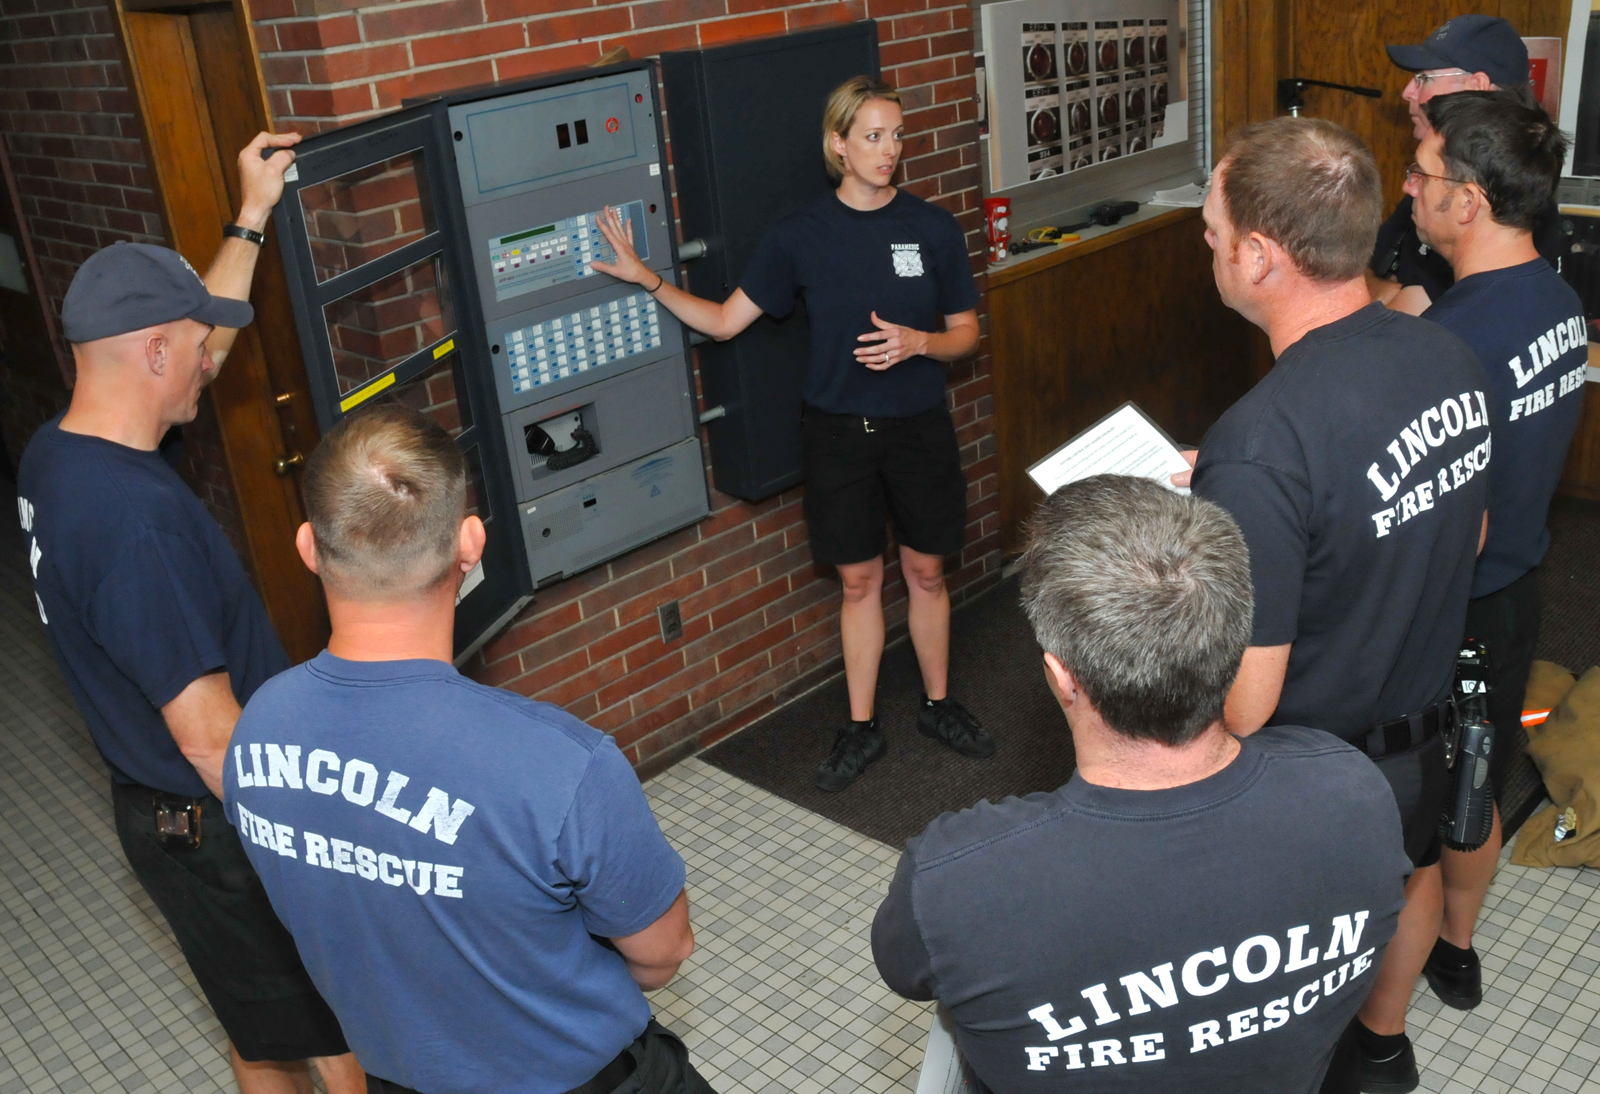 Jamie Pospisil (center) discusses the Pound Hall fire panel with fellow members of Lincoln Fire and Rescue on June 11. First responders have been using Pound Hall to train for high-rise fires. (Troy Fedderson, University Communications)